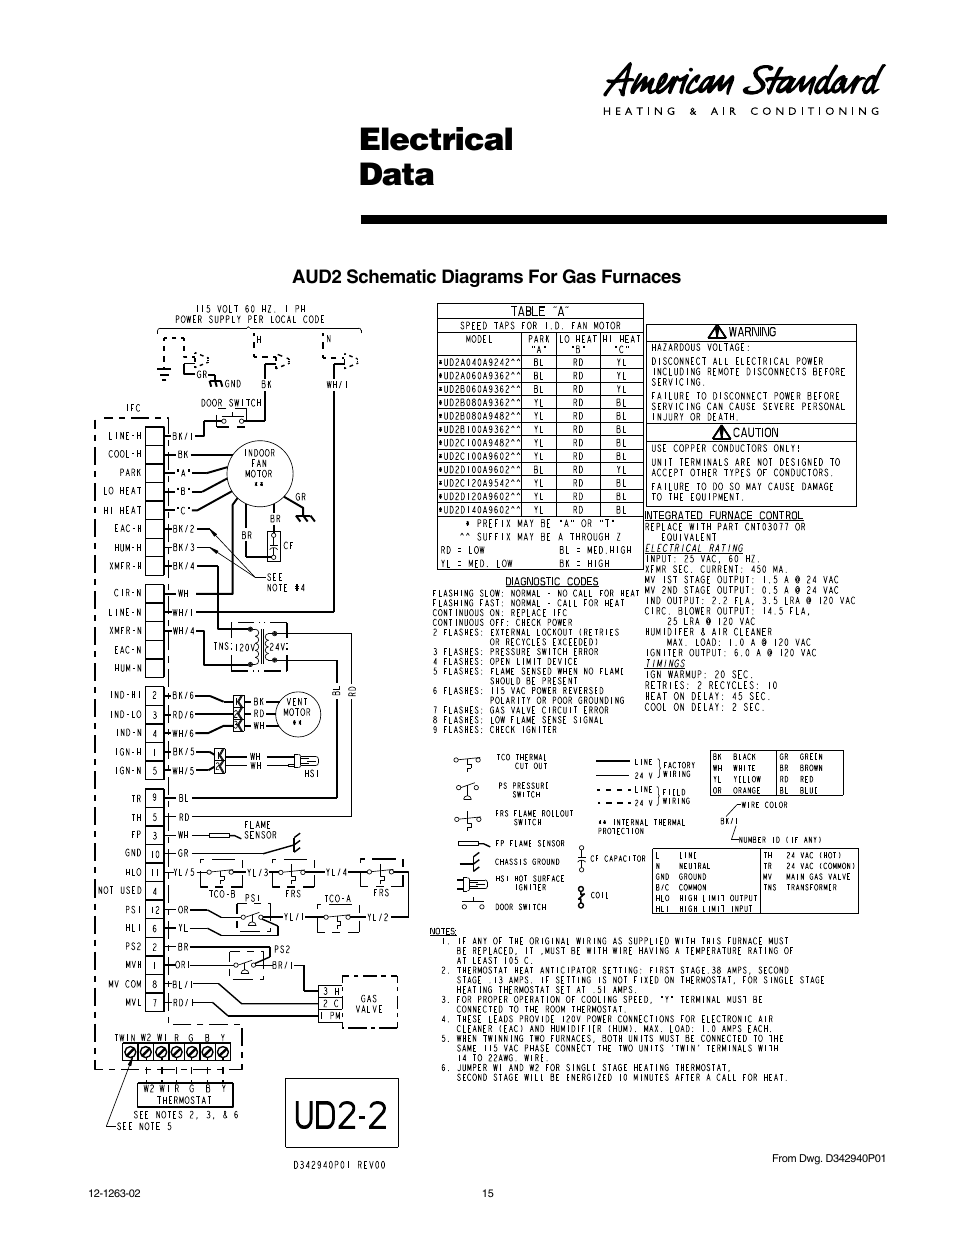 American Standard Furnace Schematic Wire Diagram Electrical Data Freedom 80 User Manual Page 15 Rh Manualsdir Com 90